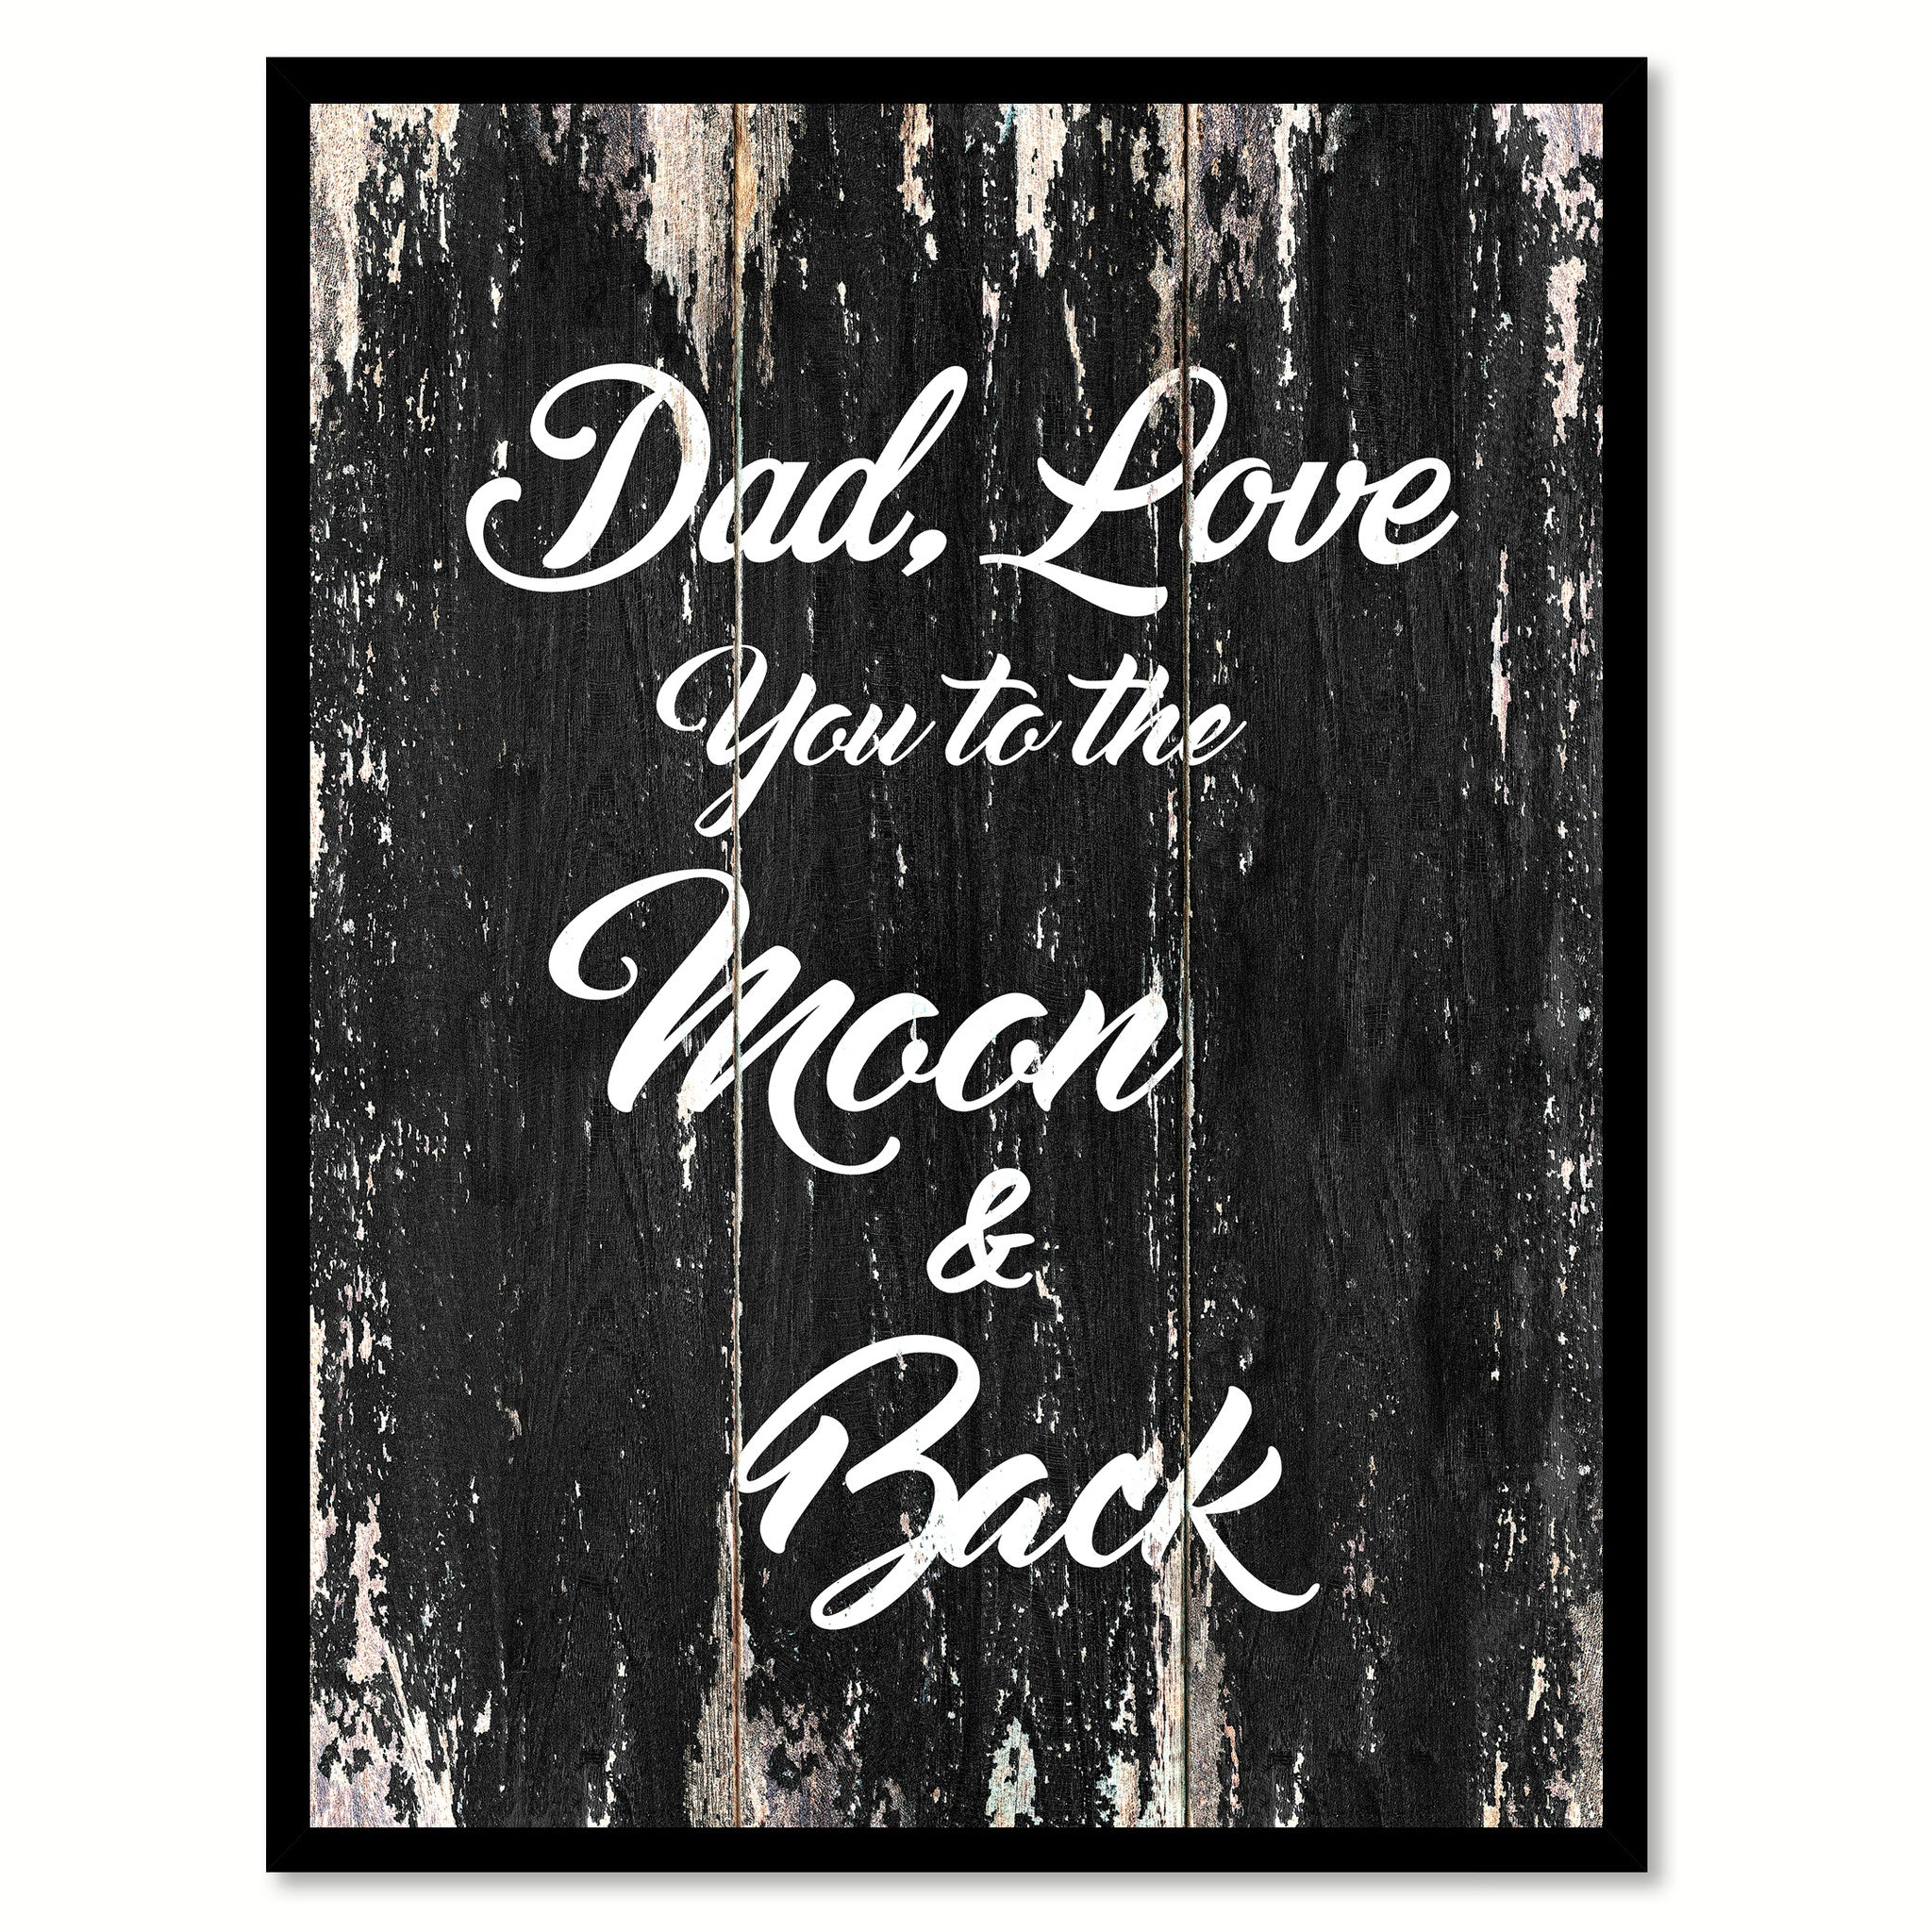 Dad love you to the moon & back Motivational Quote Saying Canvas Print with Picture Frame Home Decor Wall Art